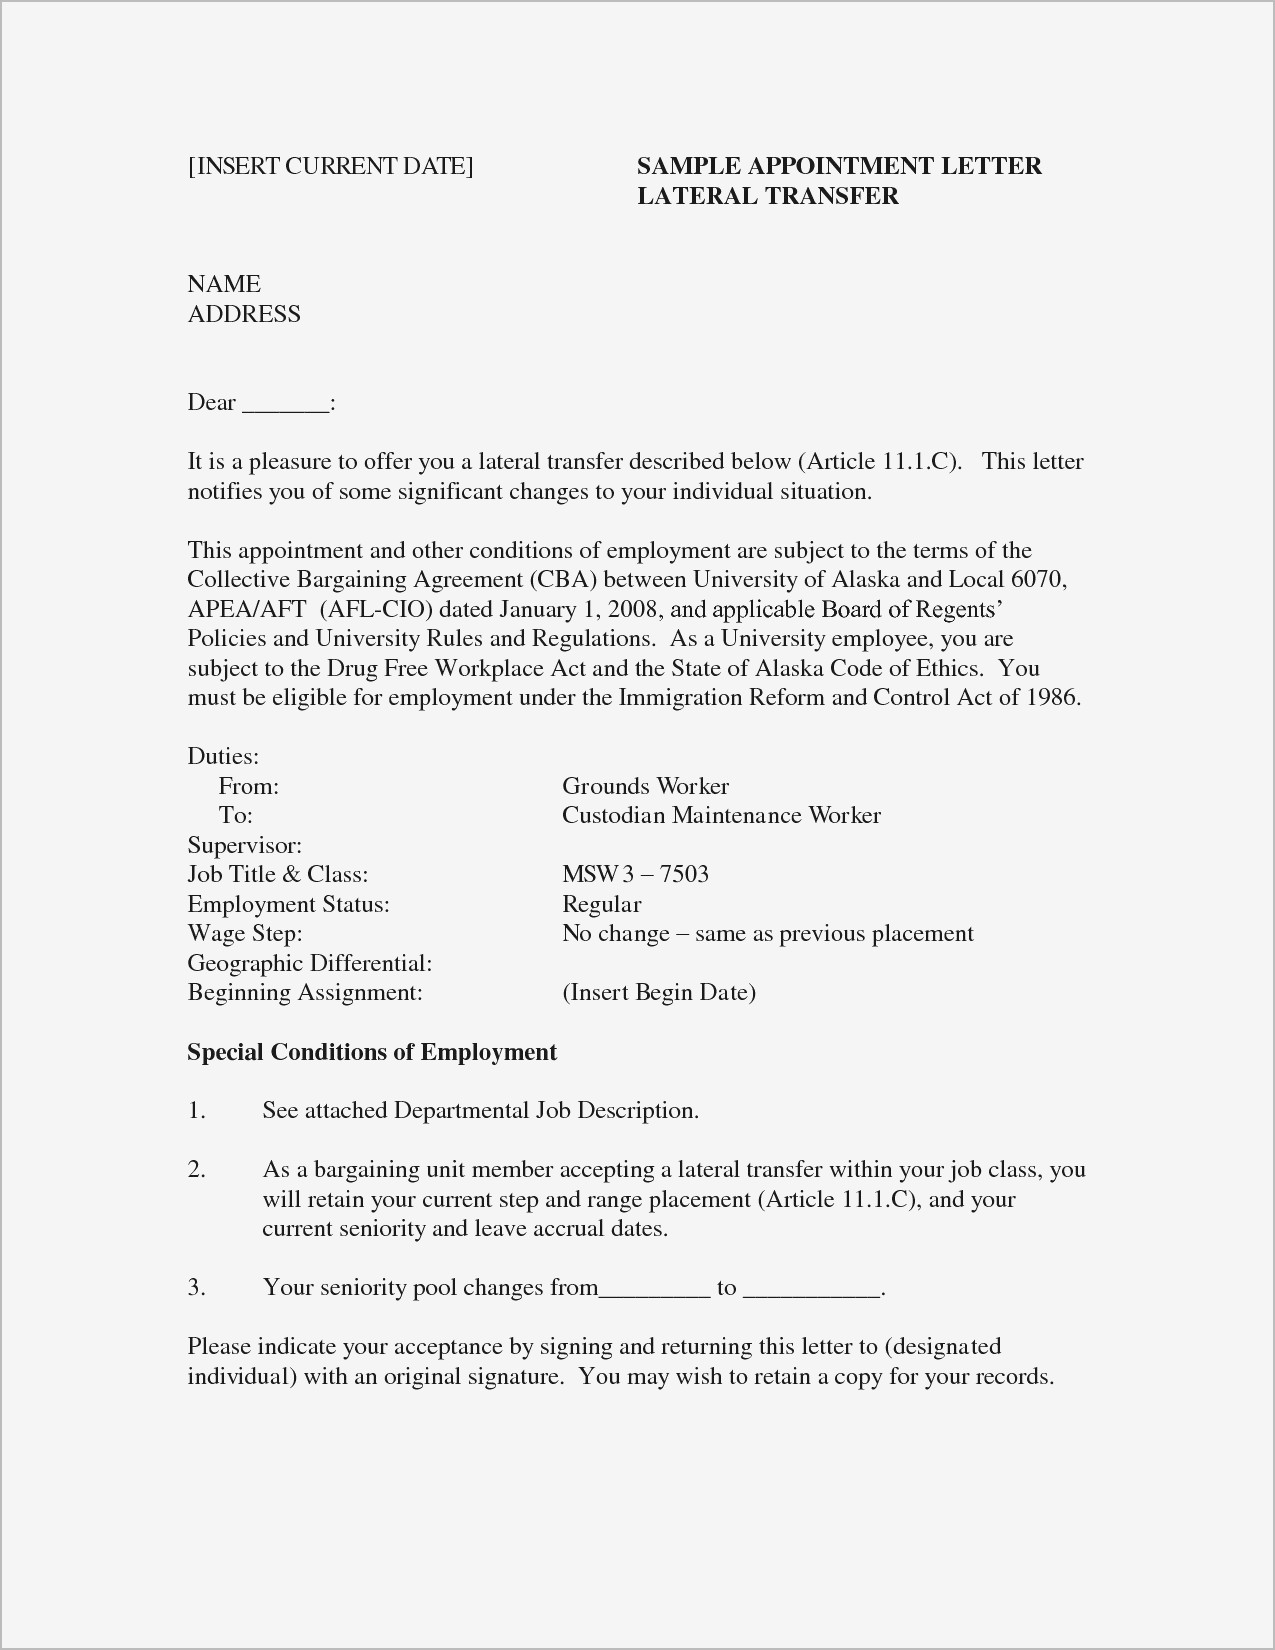 Short Cover Letter Template - Short Cover Letter Sample Pdf format